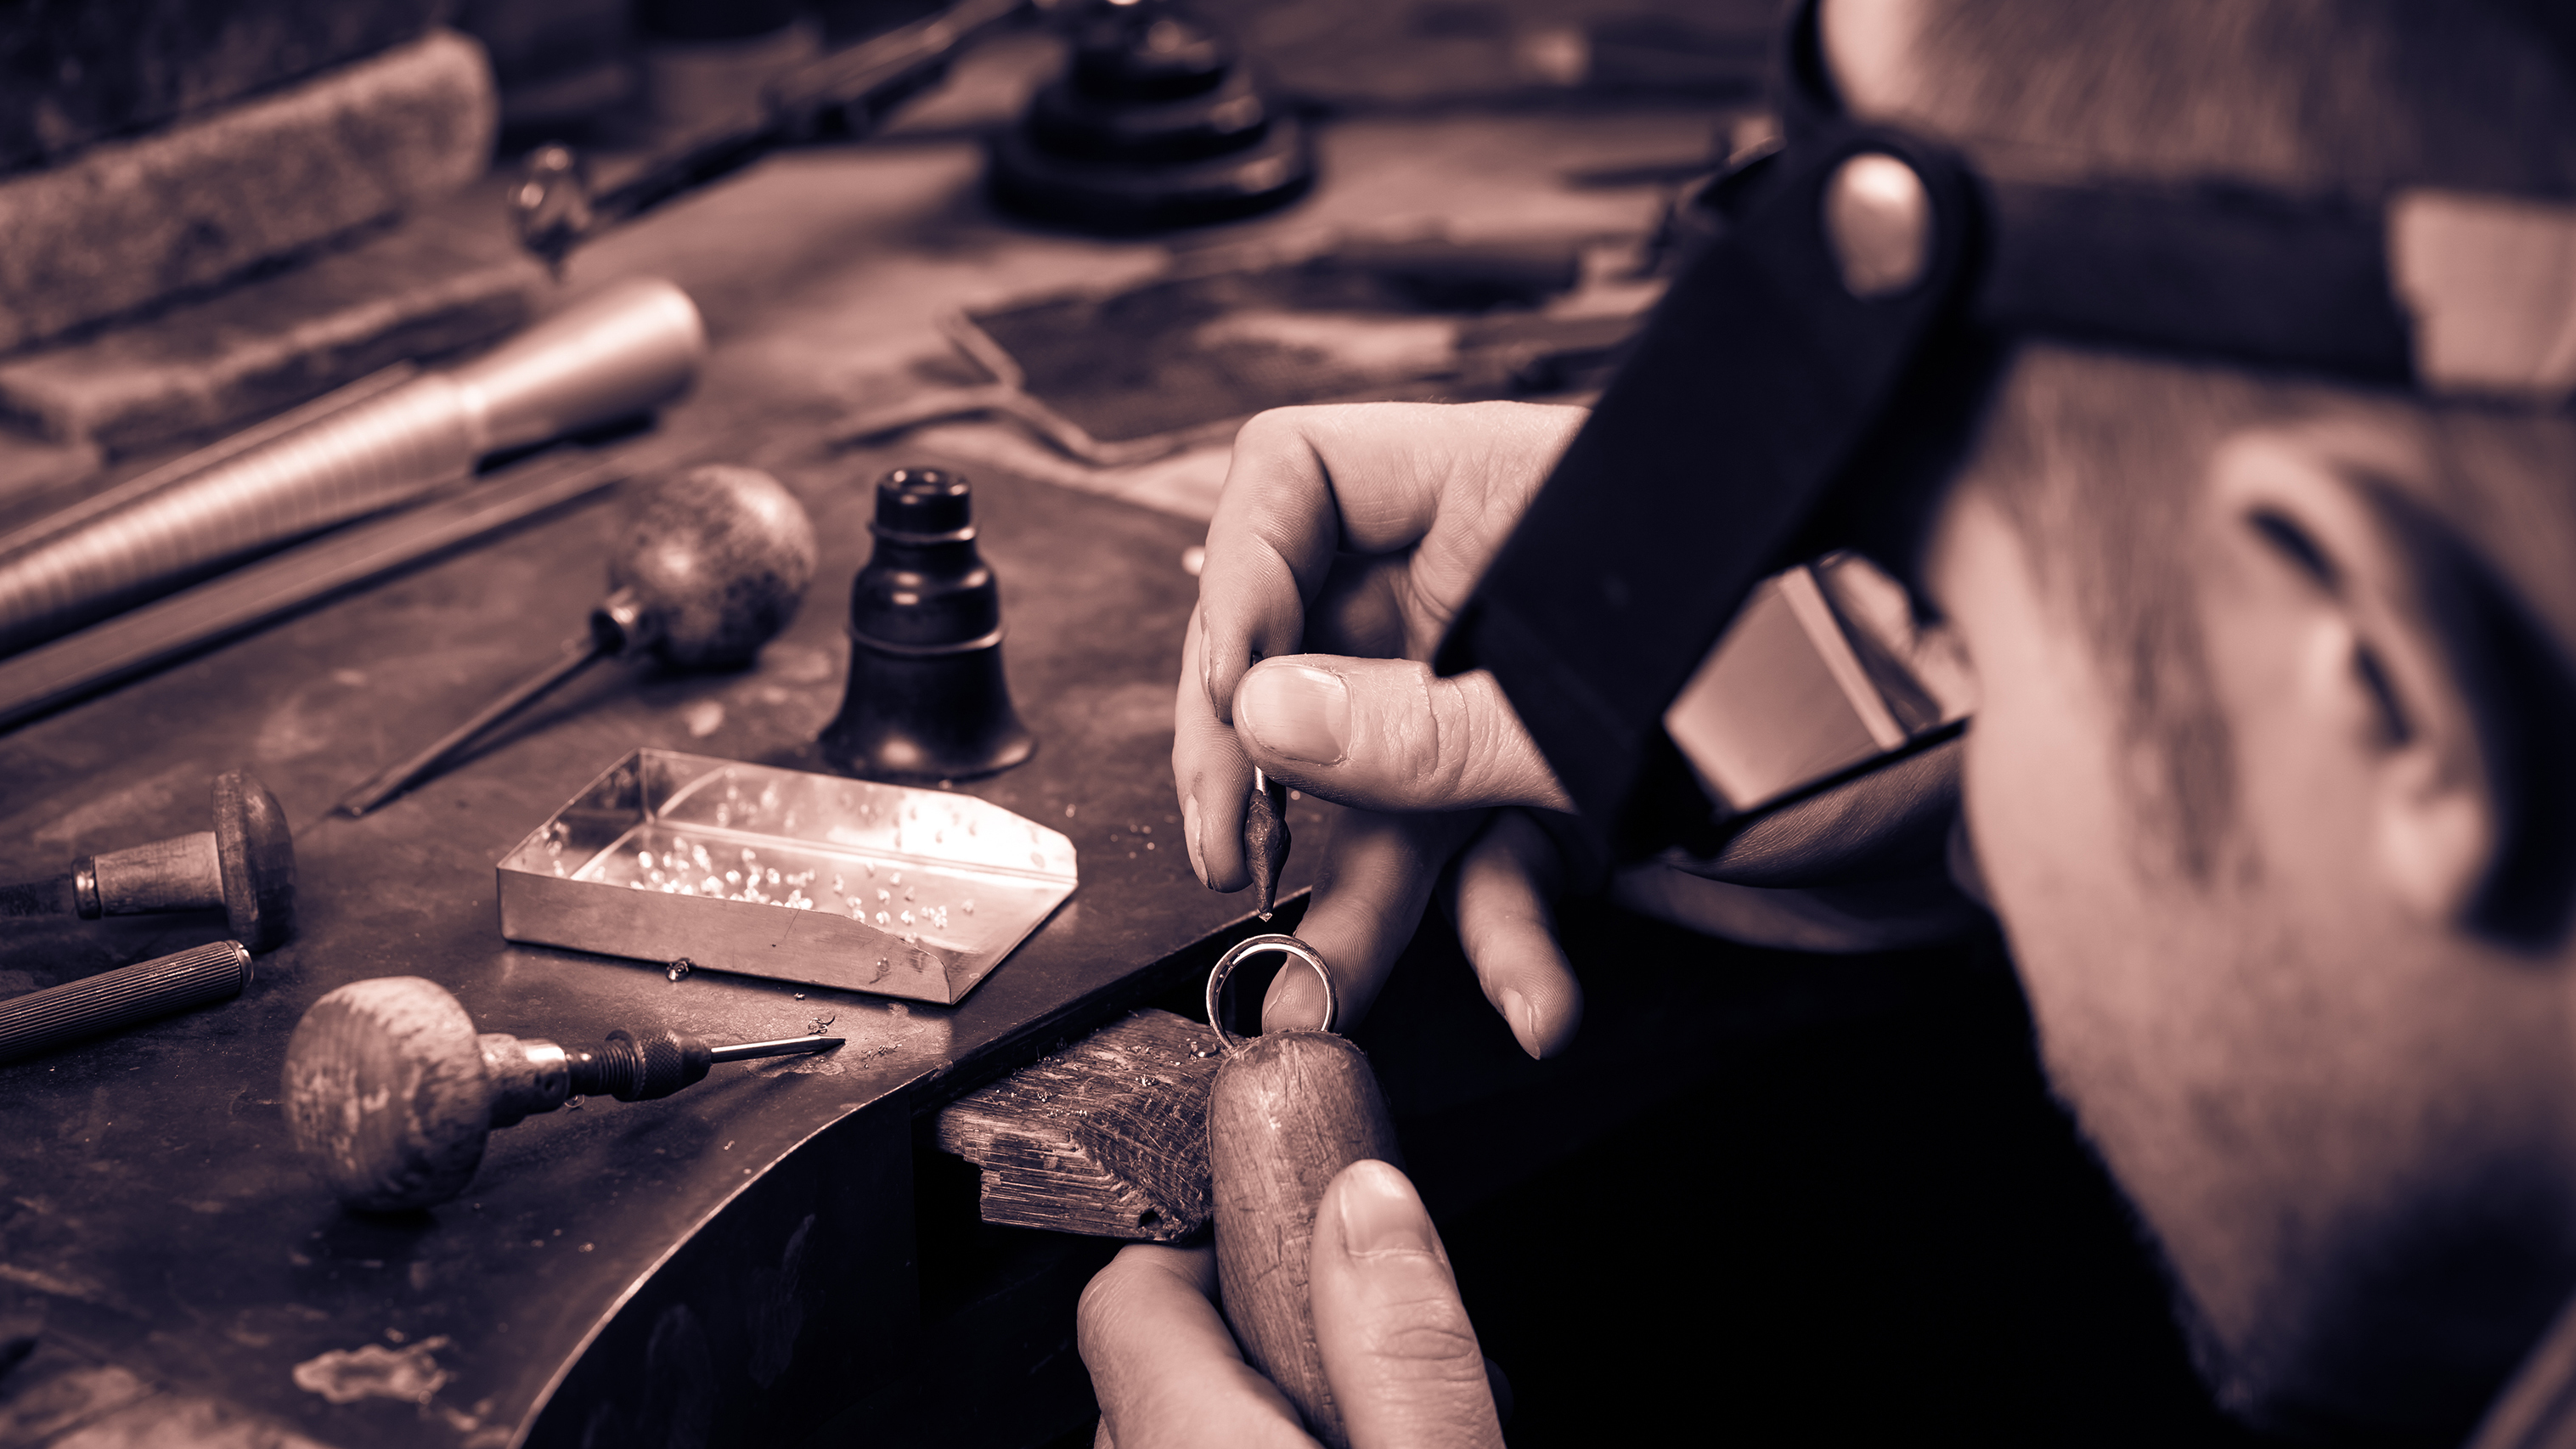 person working on jewelry